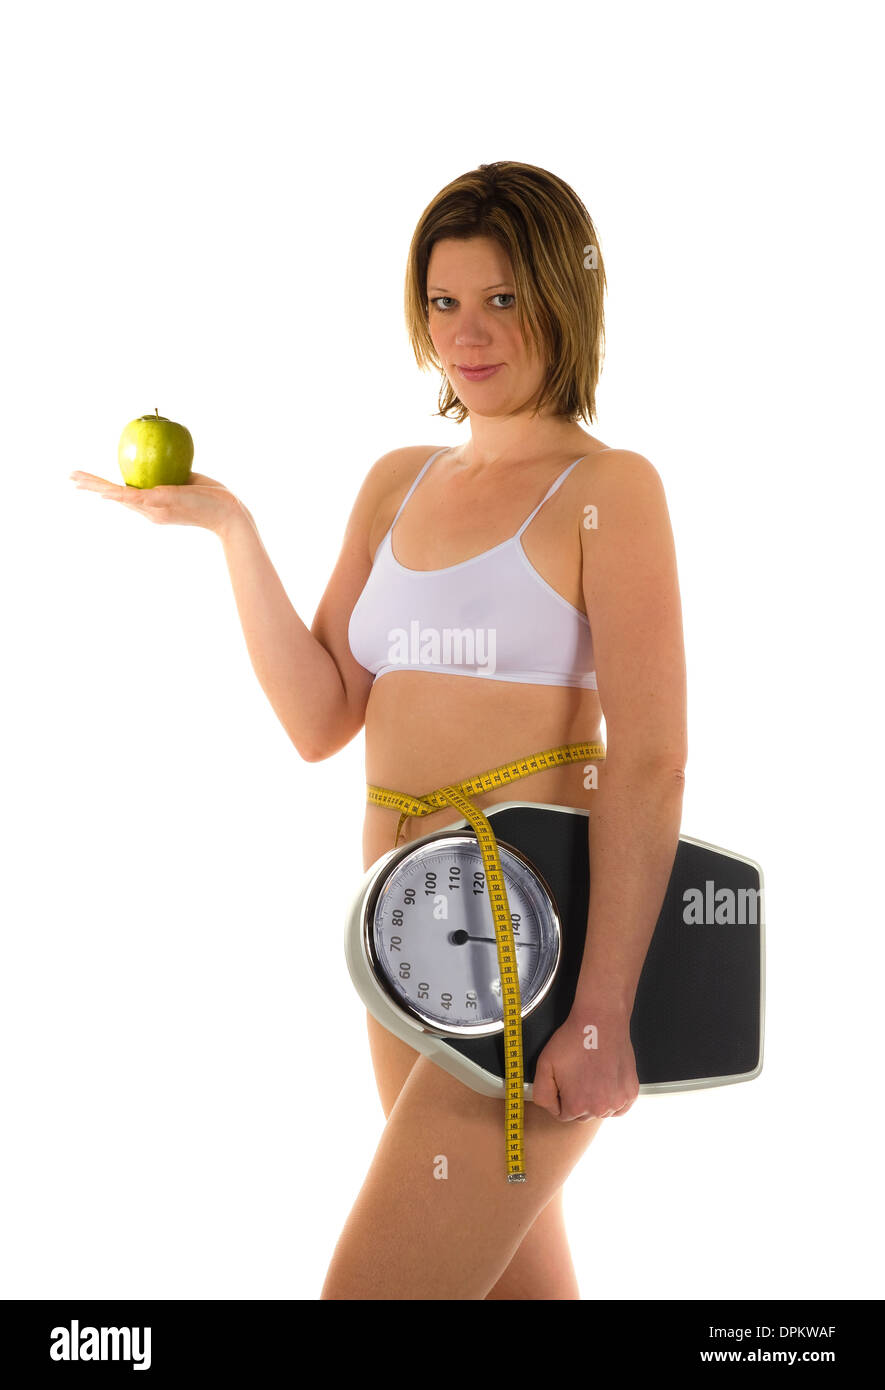 A woman with a weight scale and an apple - Stock Image